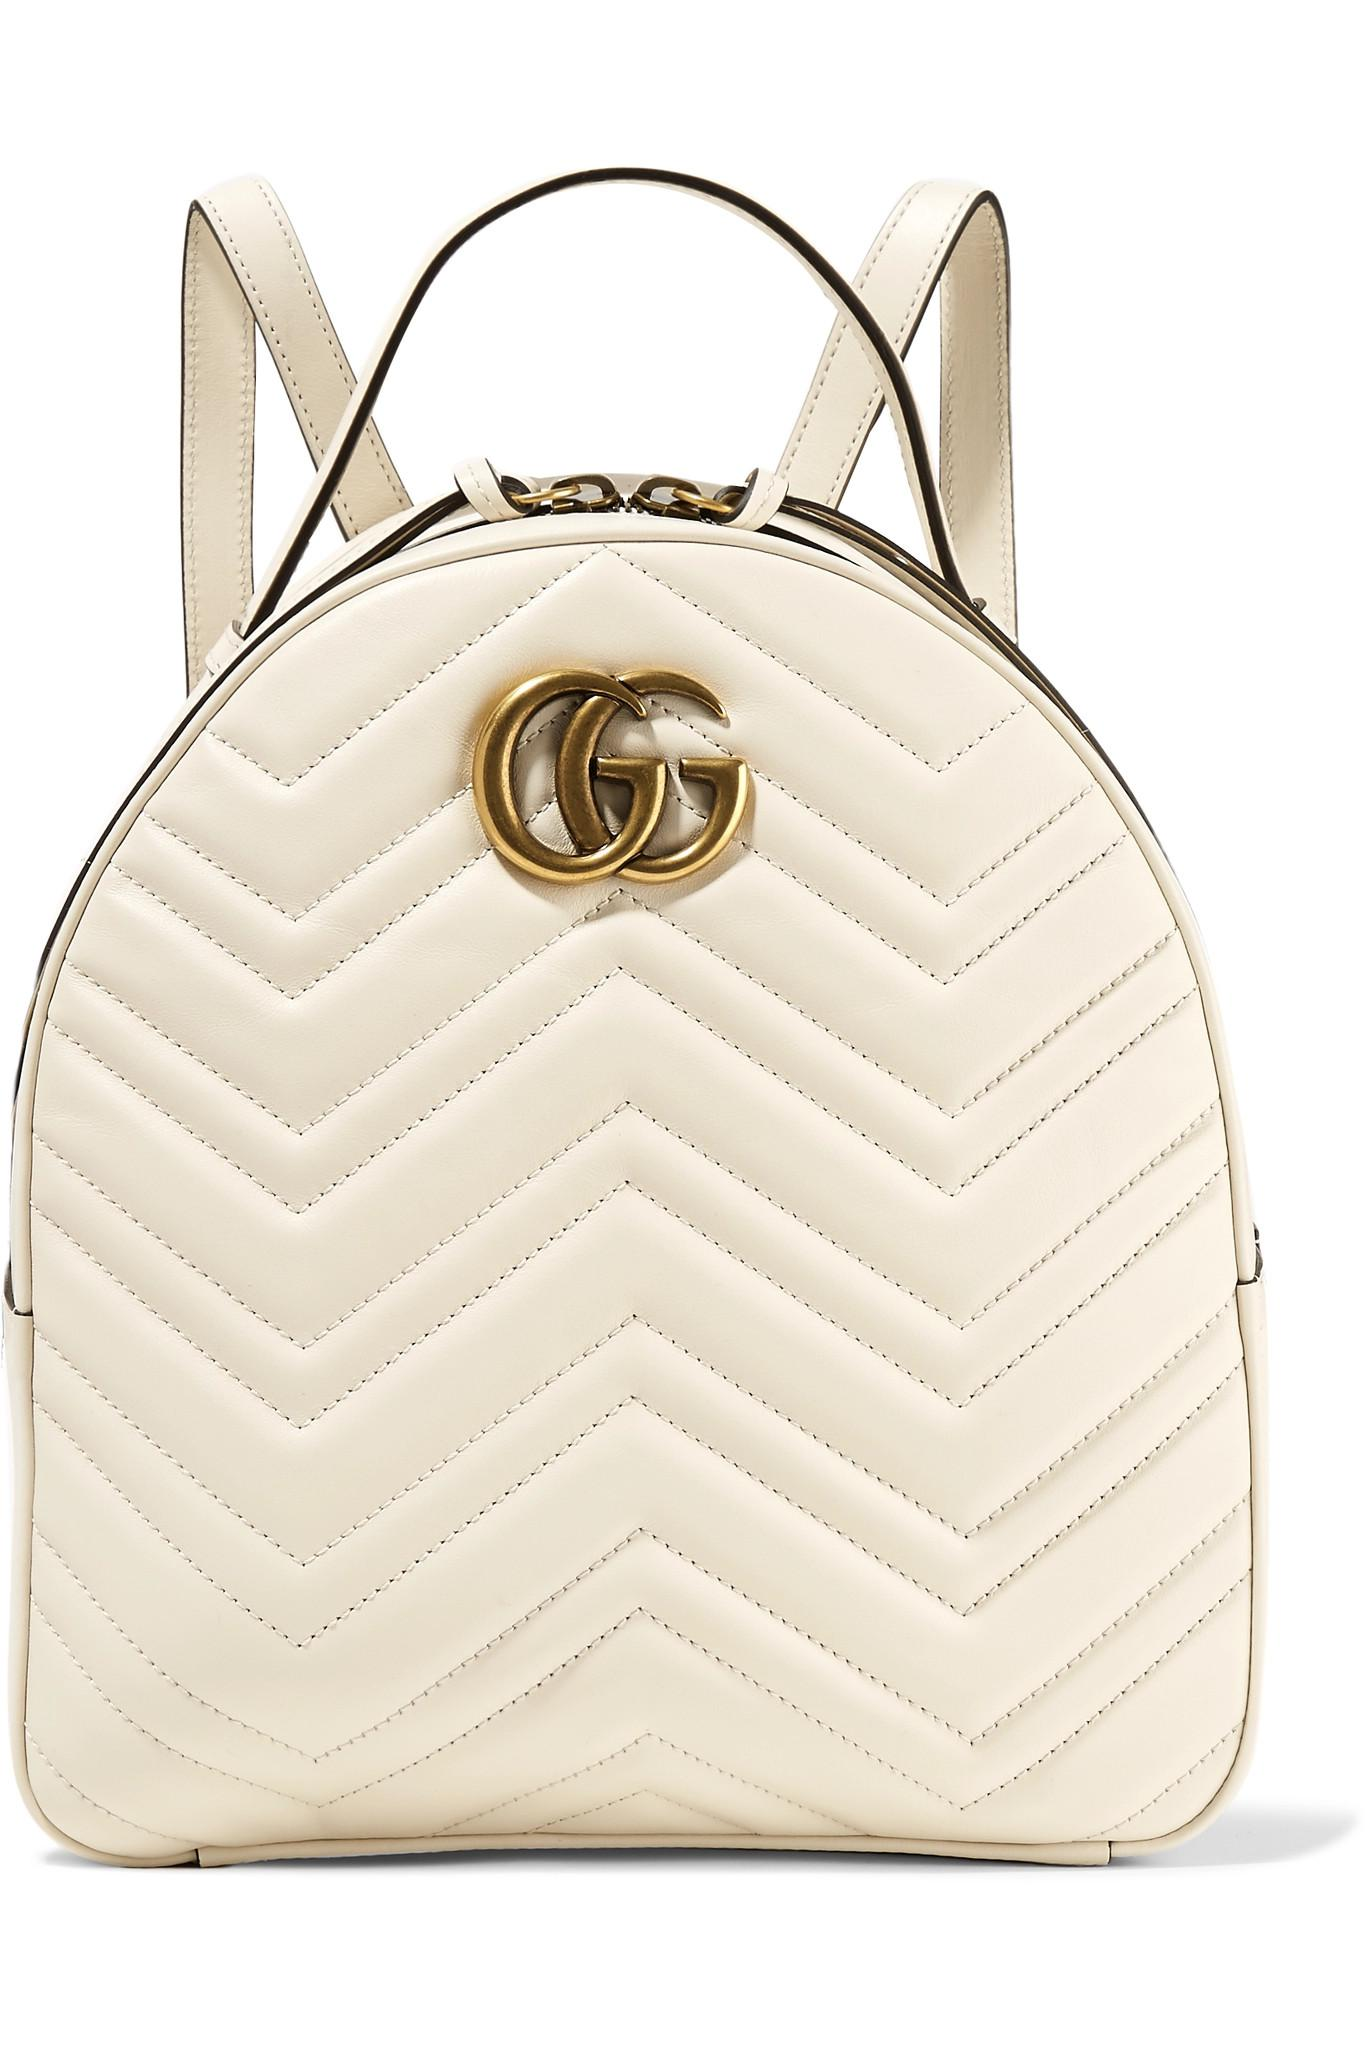 49f30e33539 Gucci Gg Marmont Quilted Leather Backpack in White - Lyst